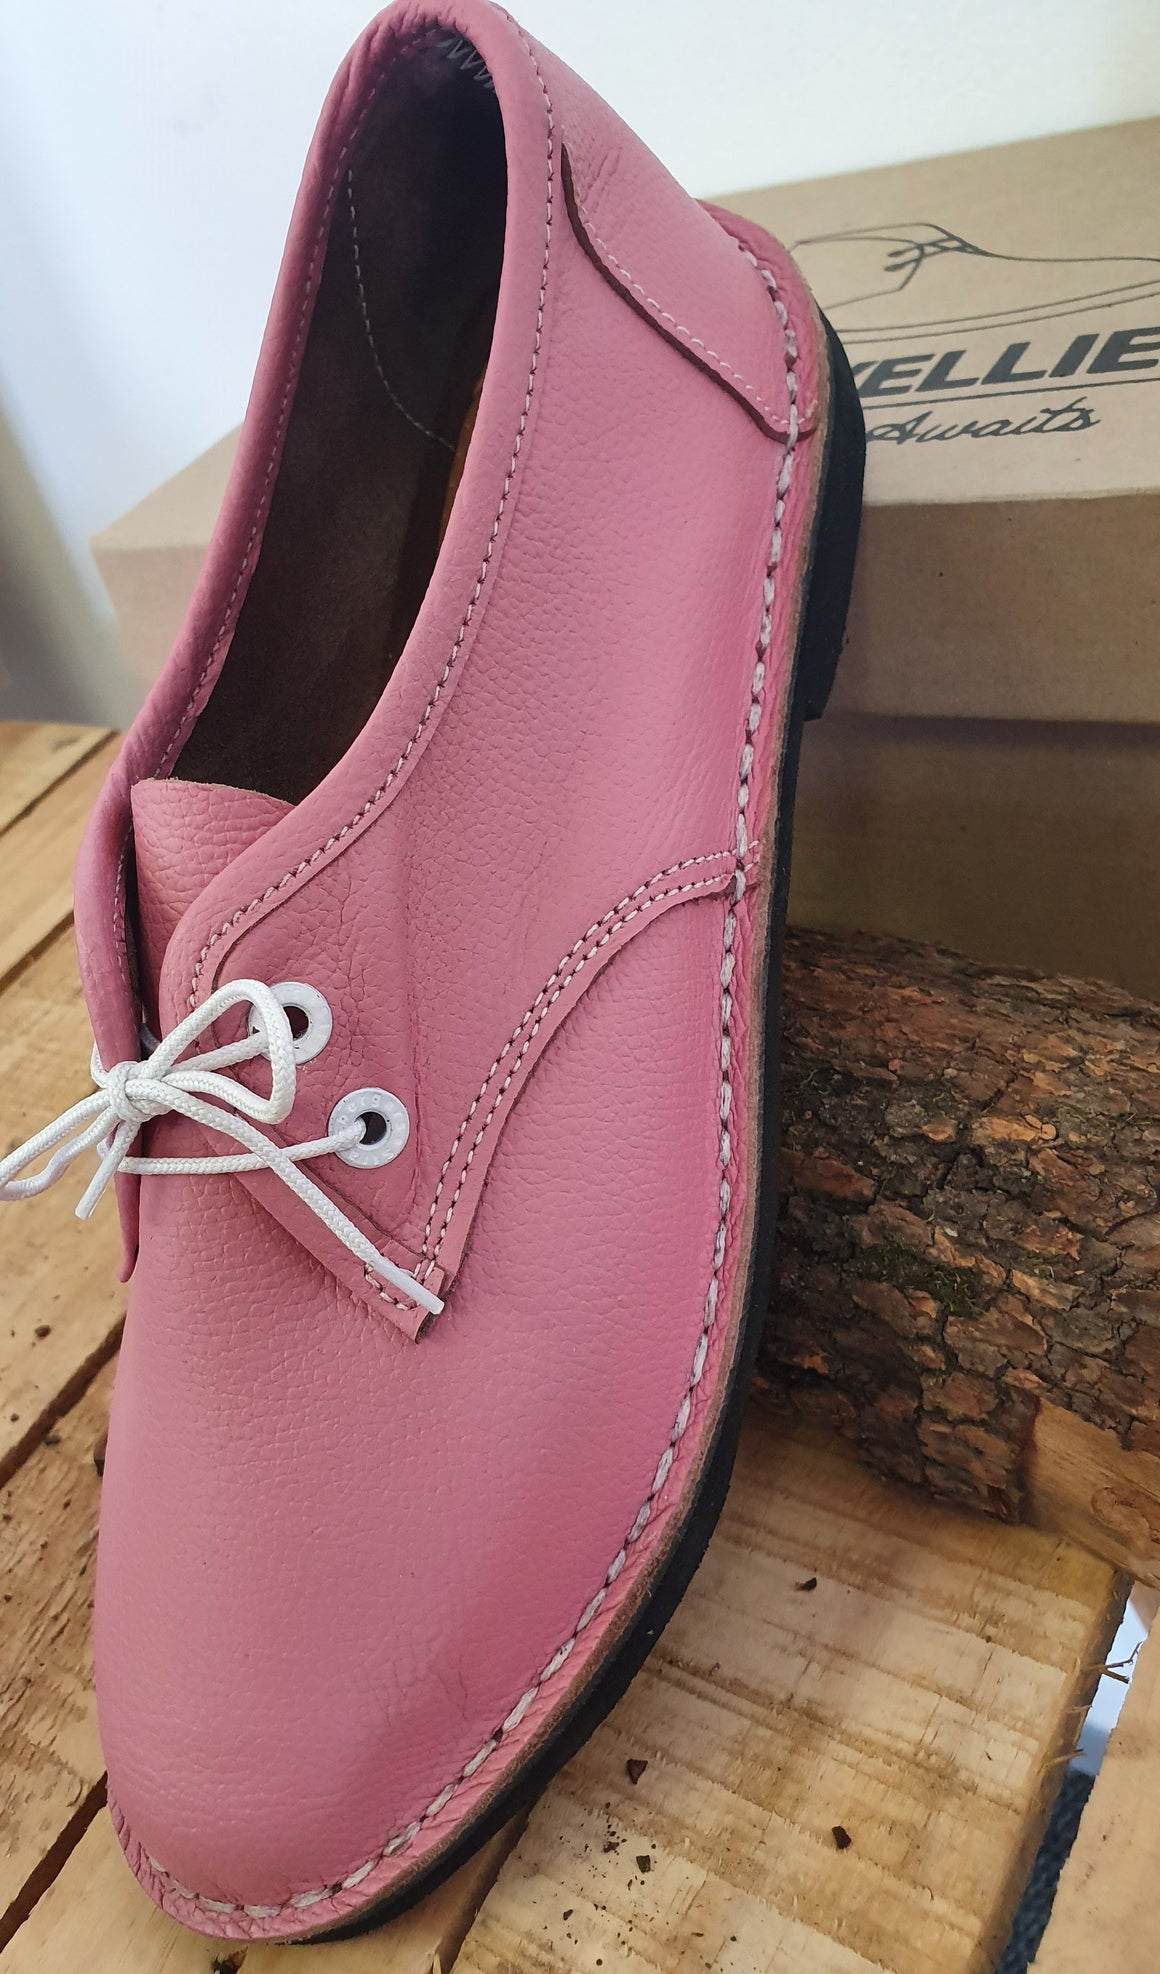 Ladies Pink Vellies